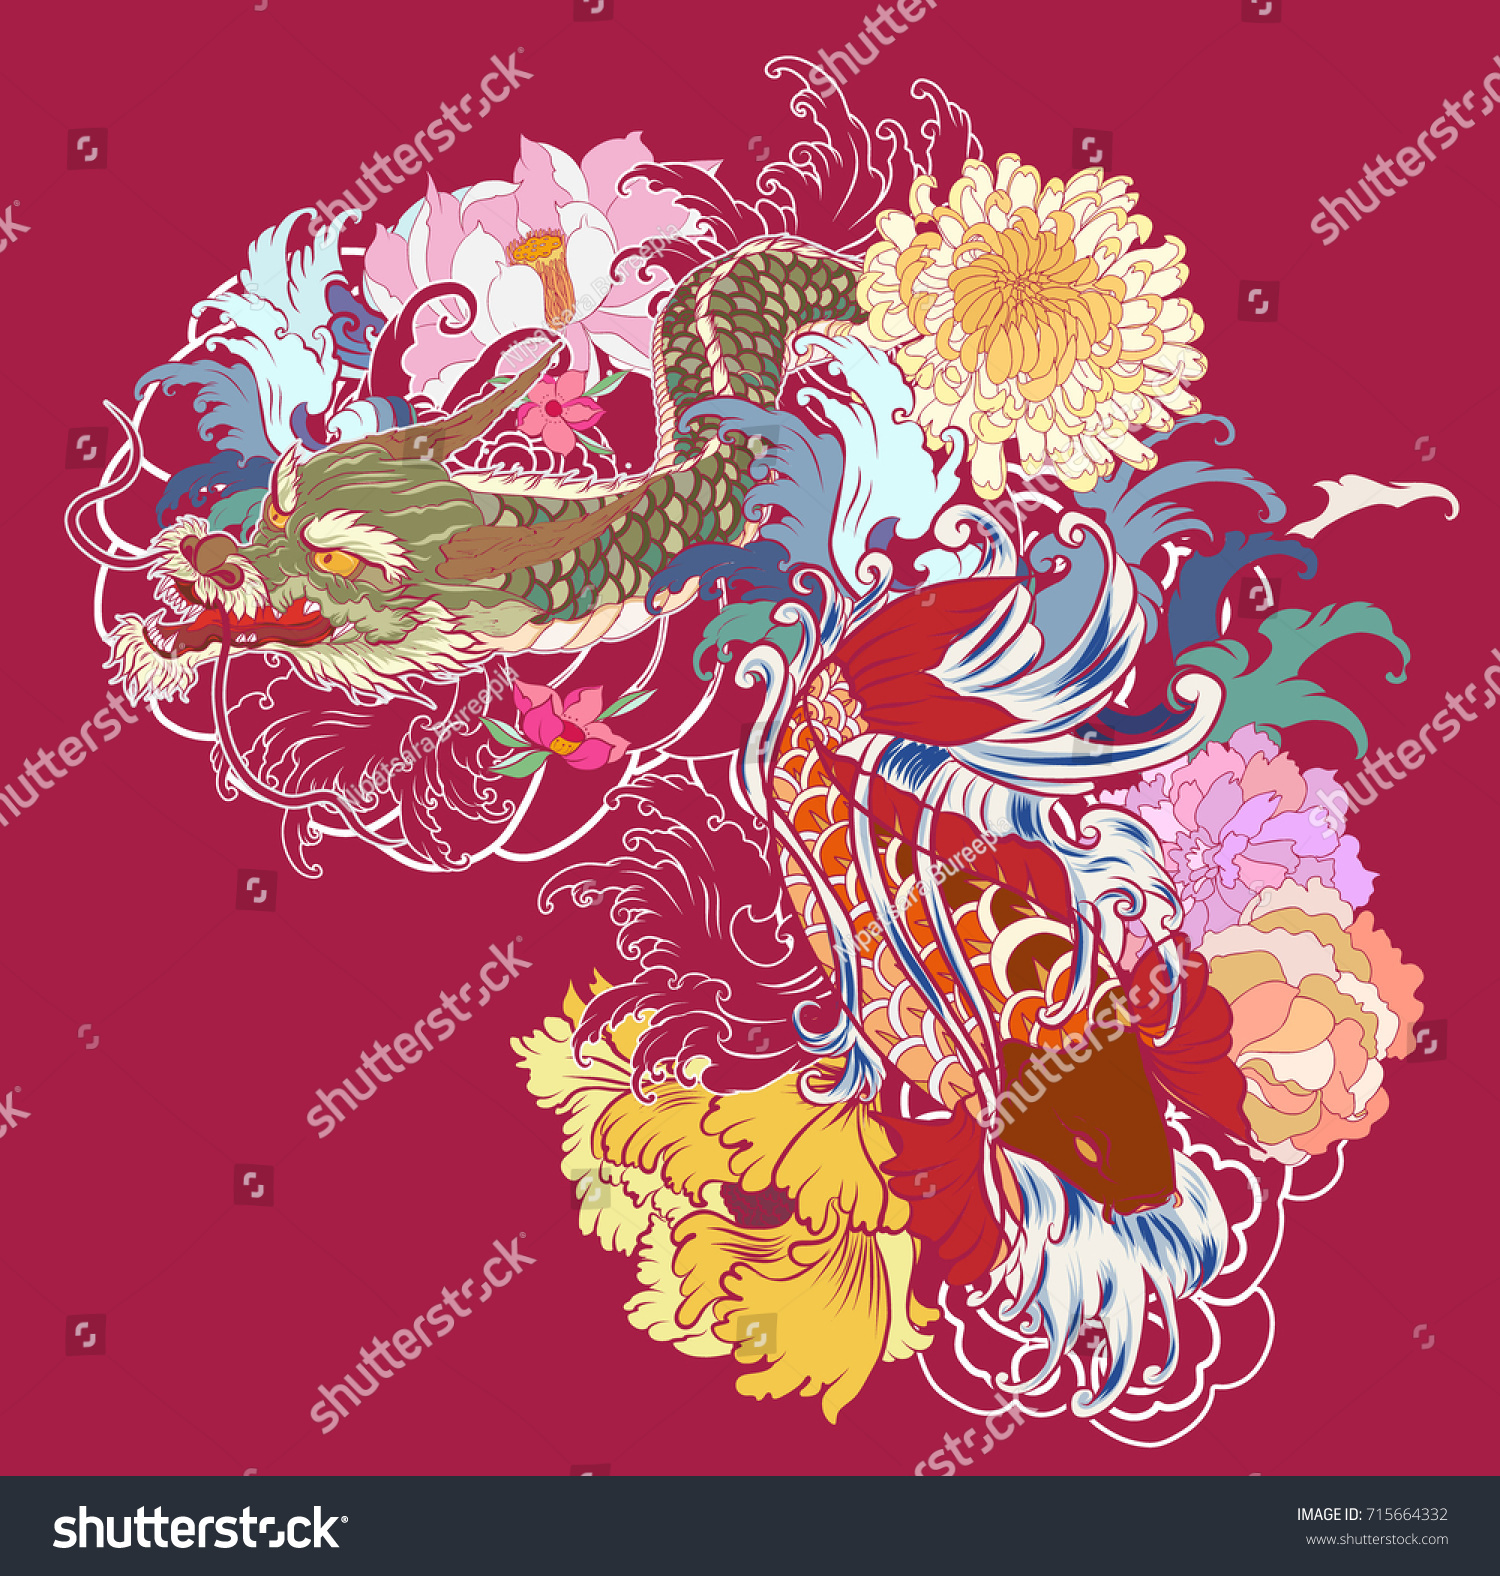 Hand Drawn Dragon Koi Fish Flower Stock Vector 715664332 - Shutterstock